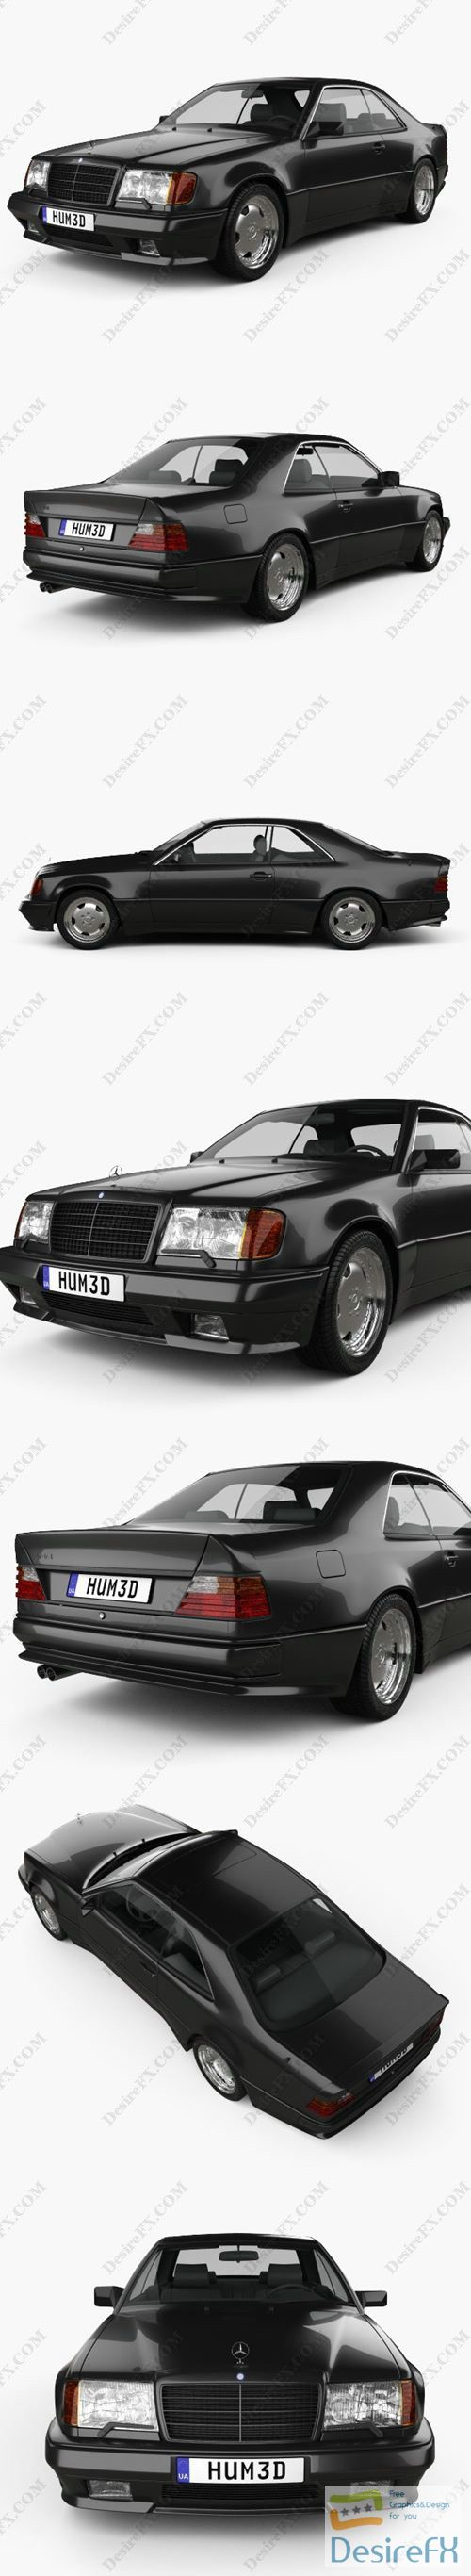 Mercedes-Benz E-class AMG widebody 1988 3D Model